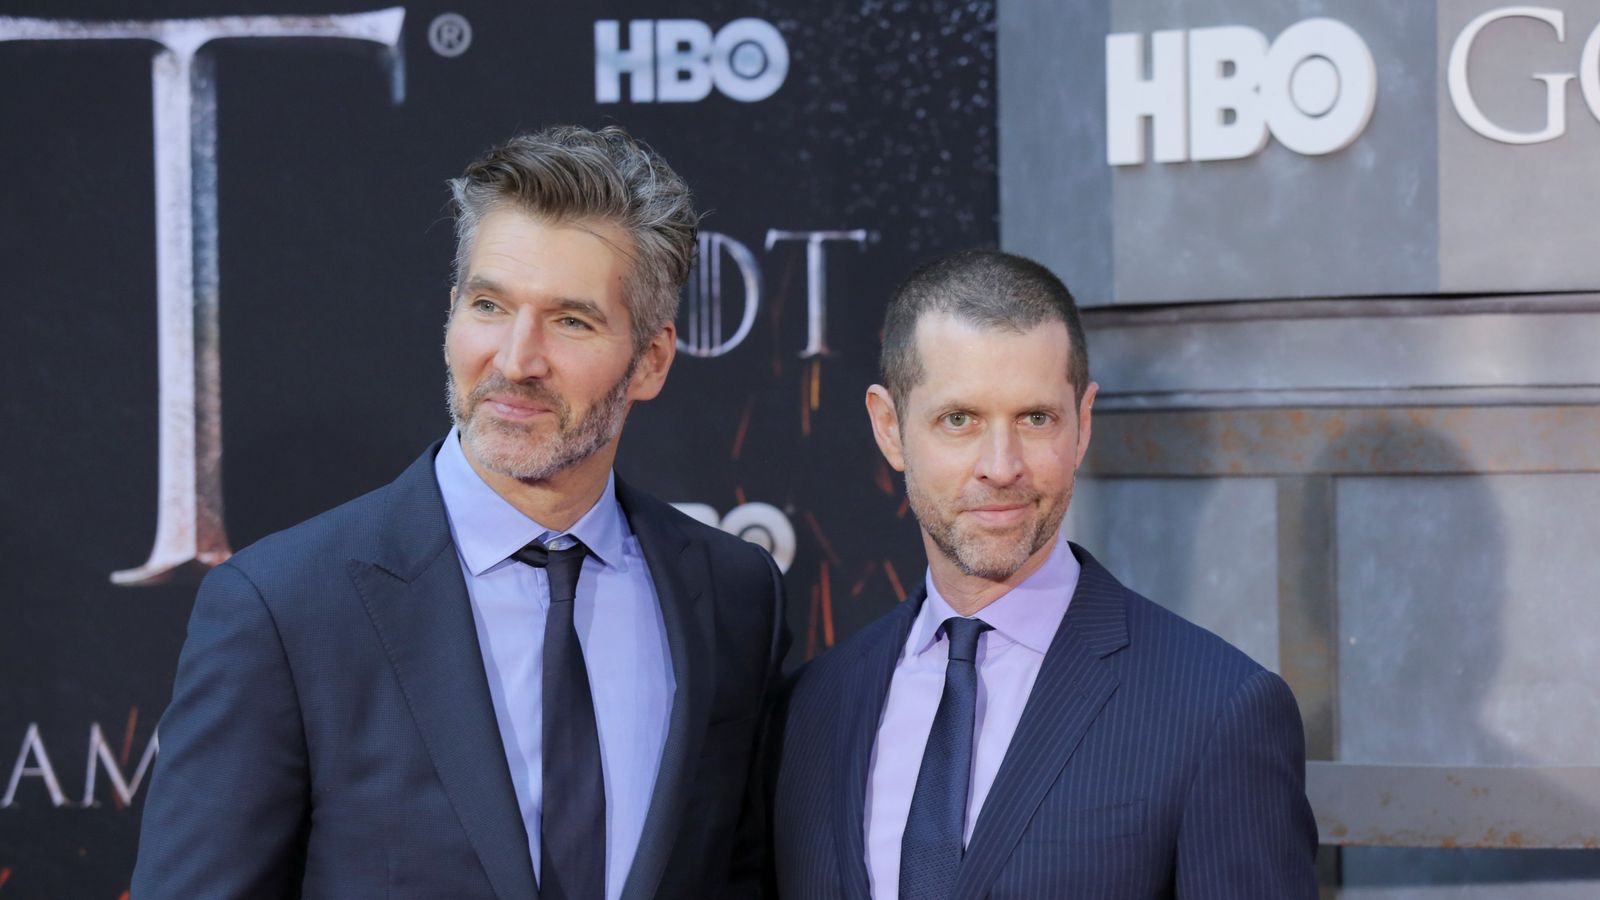 Game of Thrones creators to direct Star Wars film